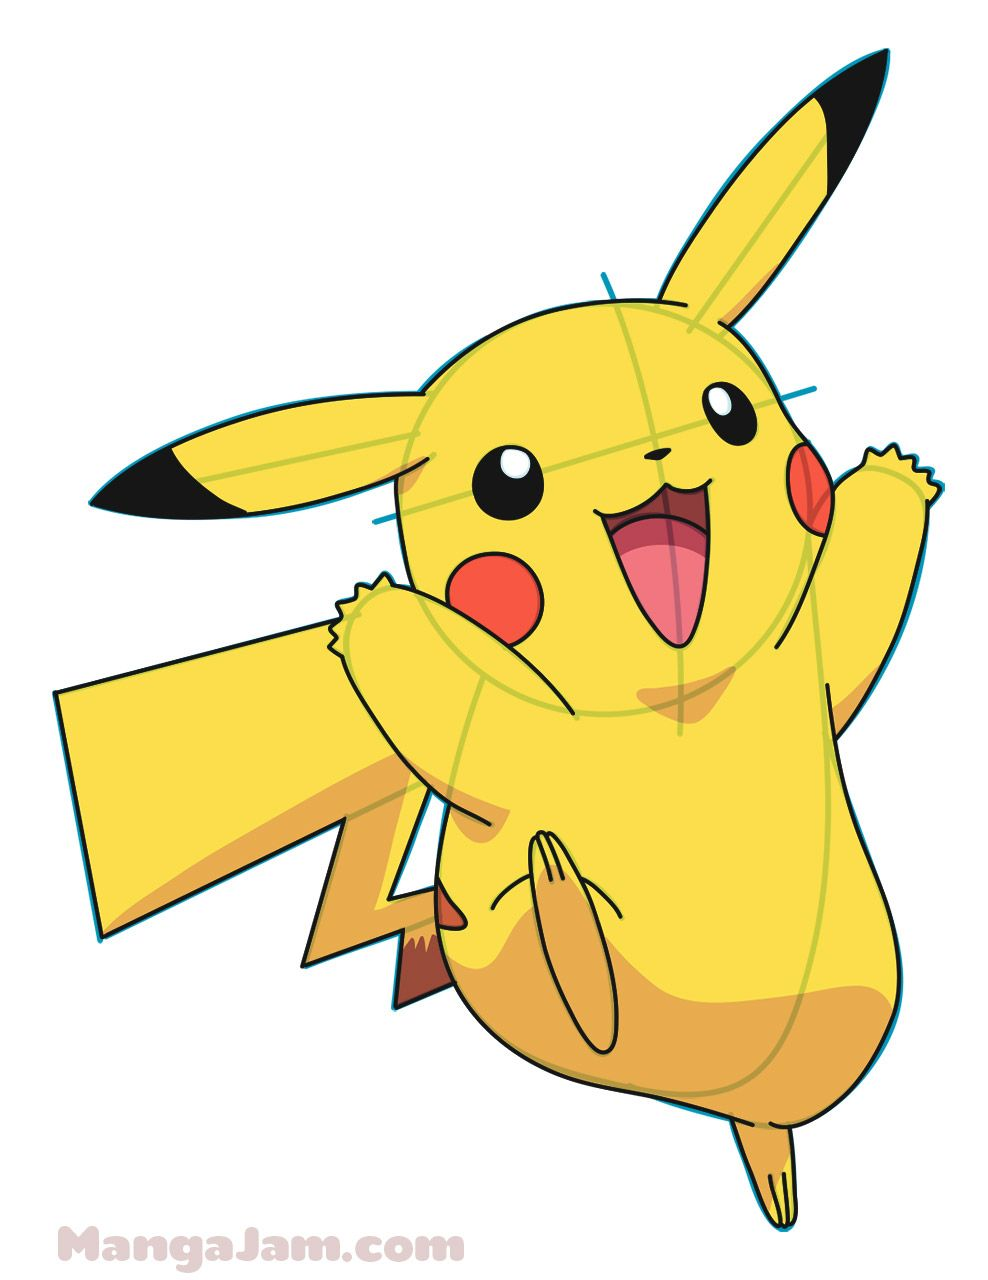 Let S Learn How To Draw Pikachu From Pokemon Today Pikachu Japanese Pikachu Is An Electric Type Pok Pikachu Drawing Pokemon Drawings Pokemon Painting